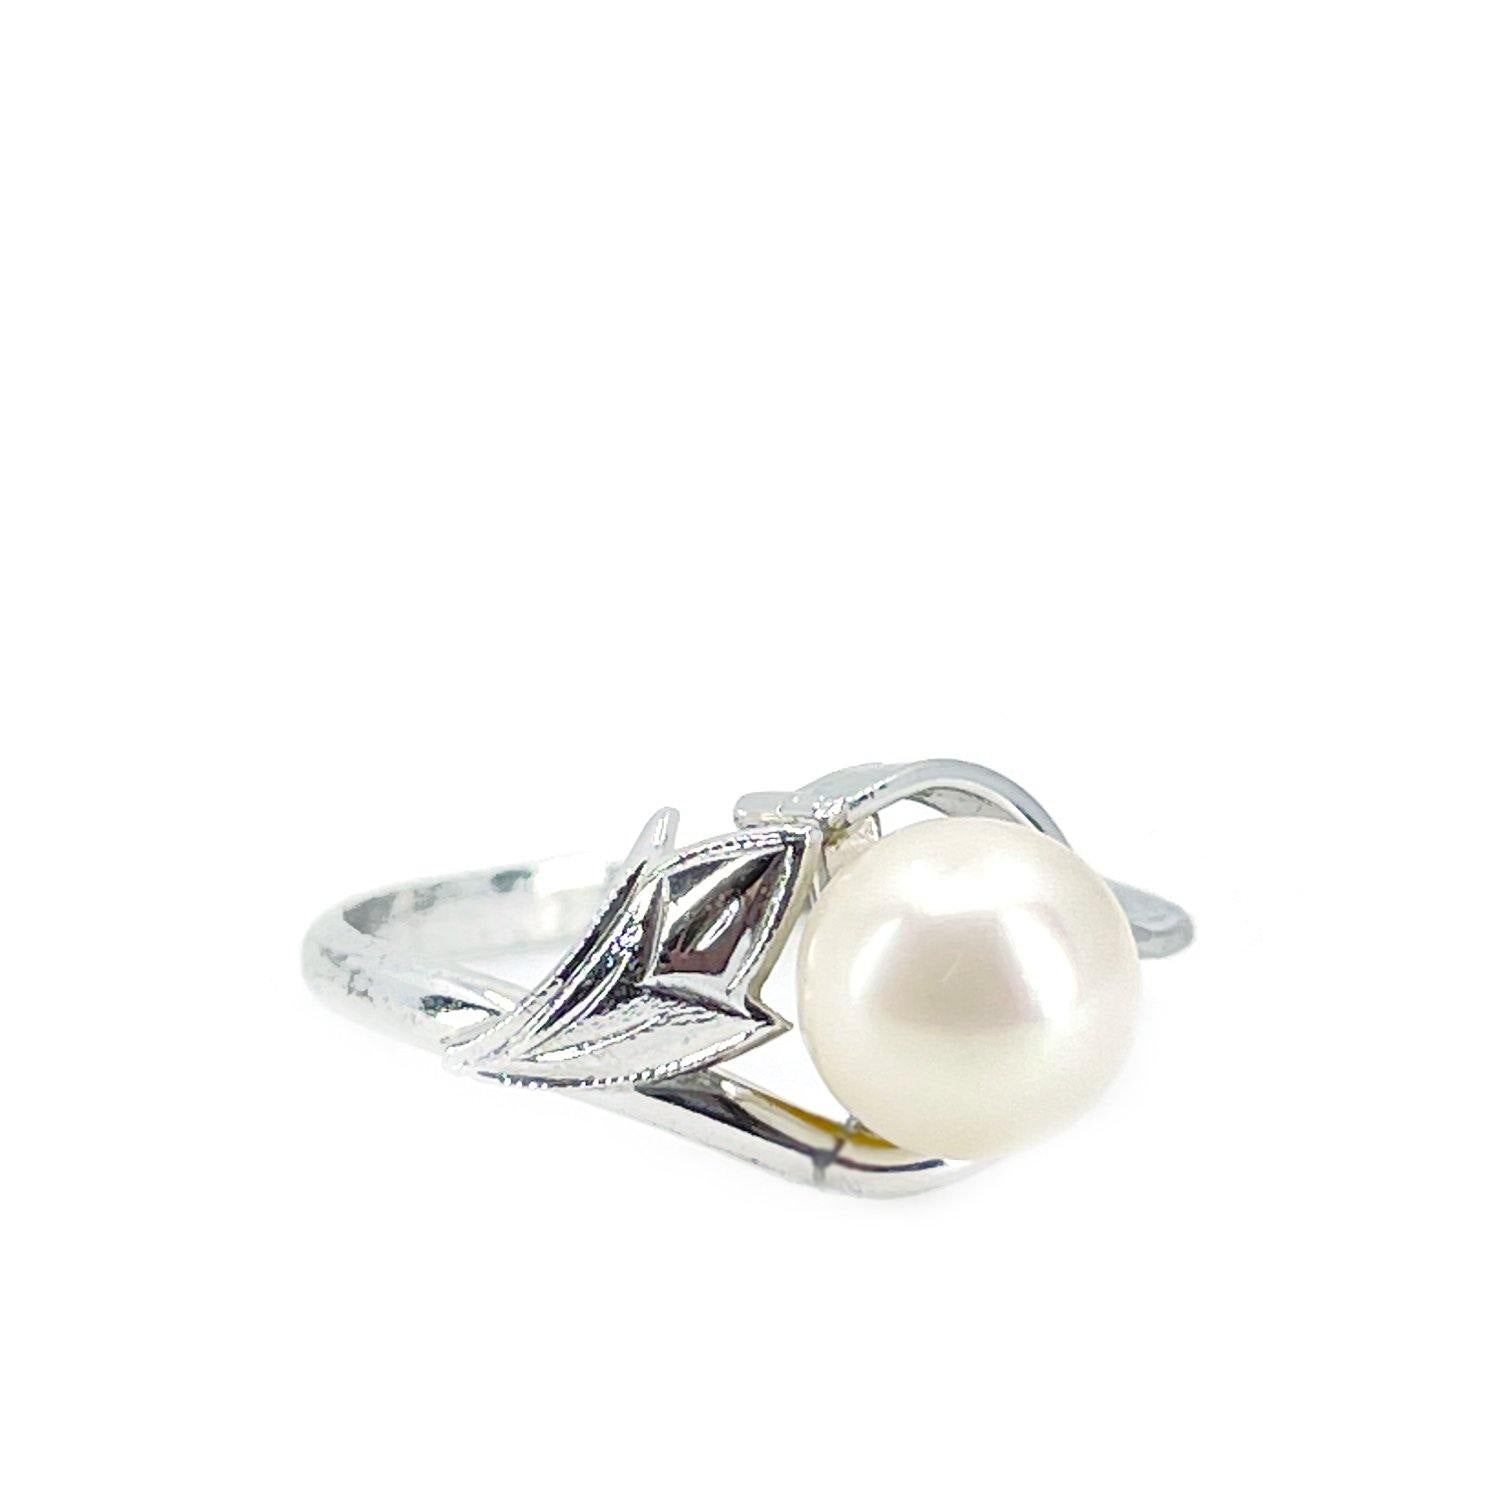 Engraved Leaf Japanese Saltwater Blue Akoya Cultured Pearl Ring- Sterling Silver Sz 7